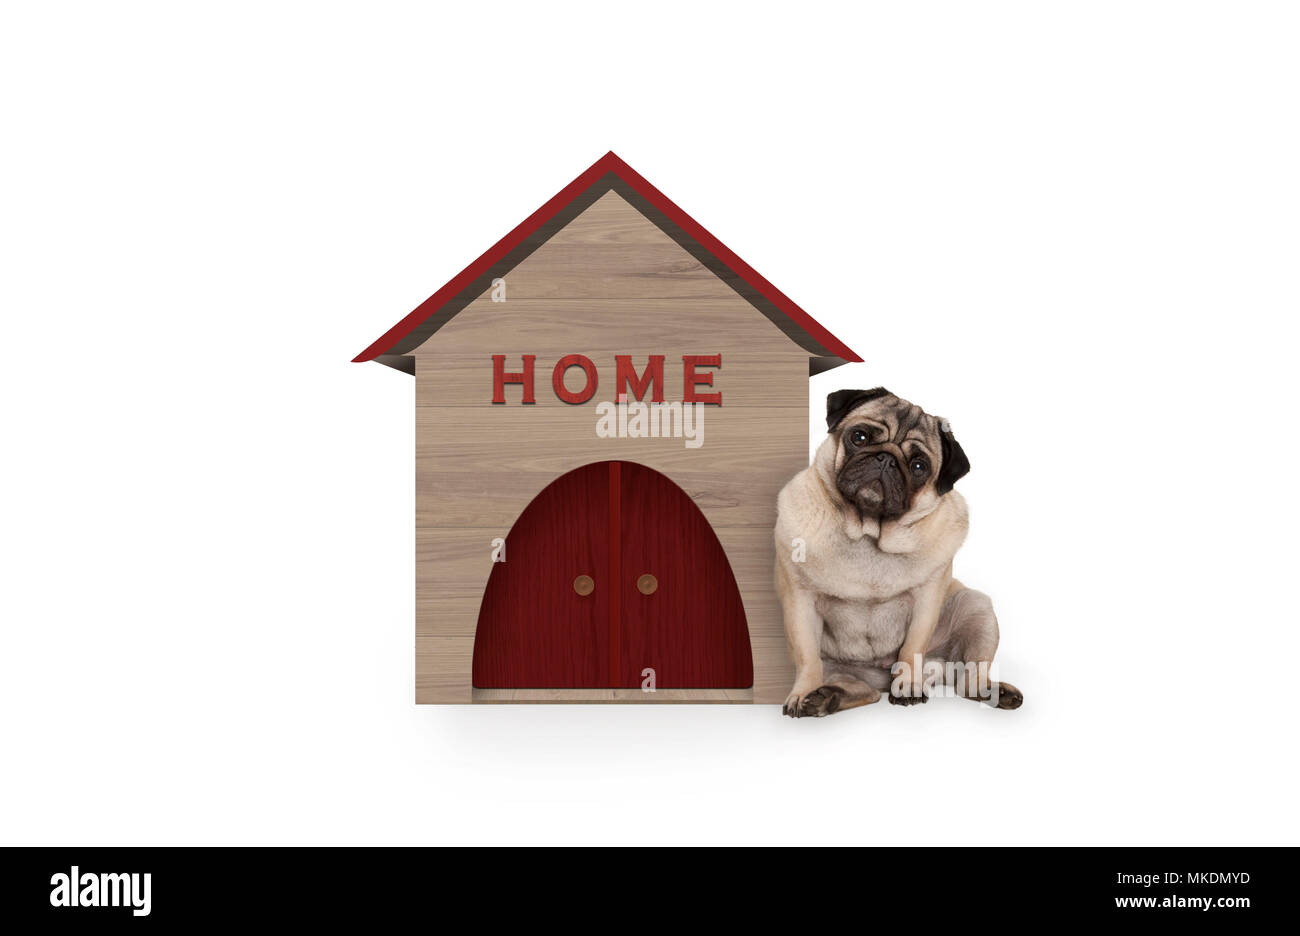 cheeky pug puppy dog sitting down next to dog house with sign Home, isolated on white background - Stock Image